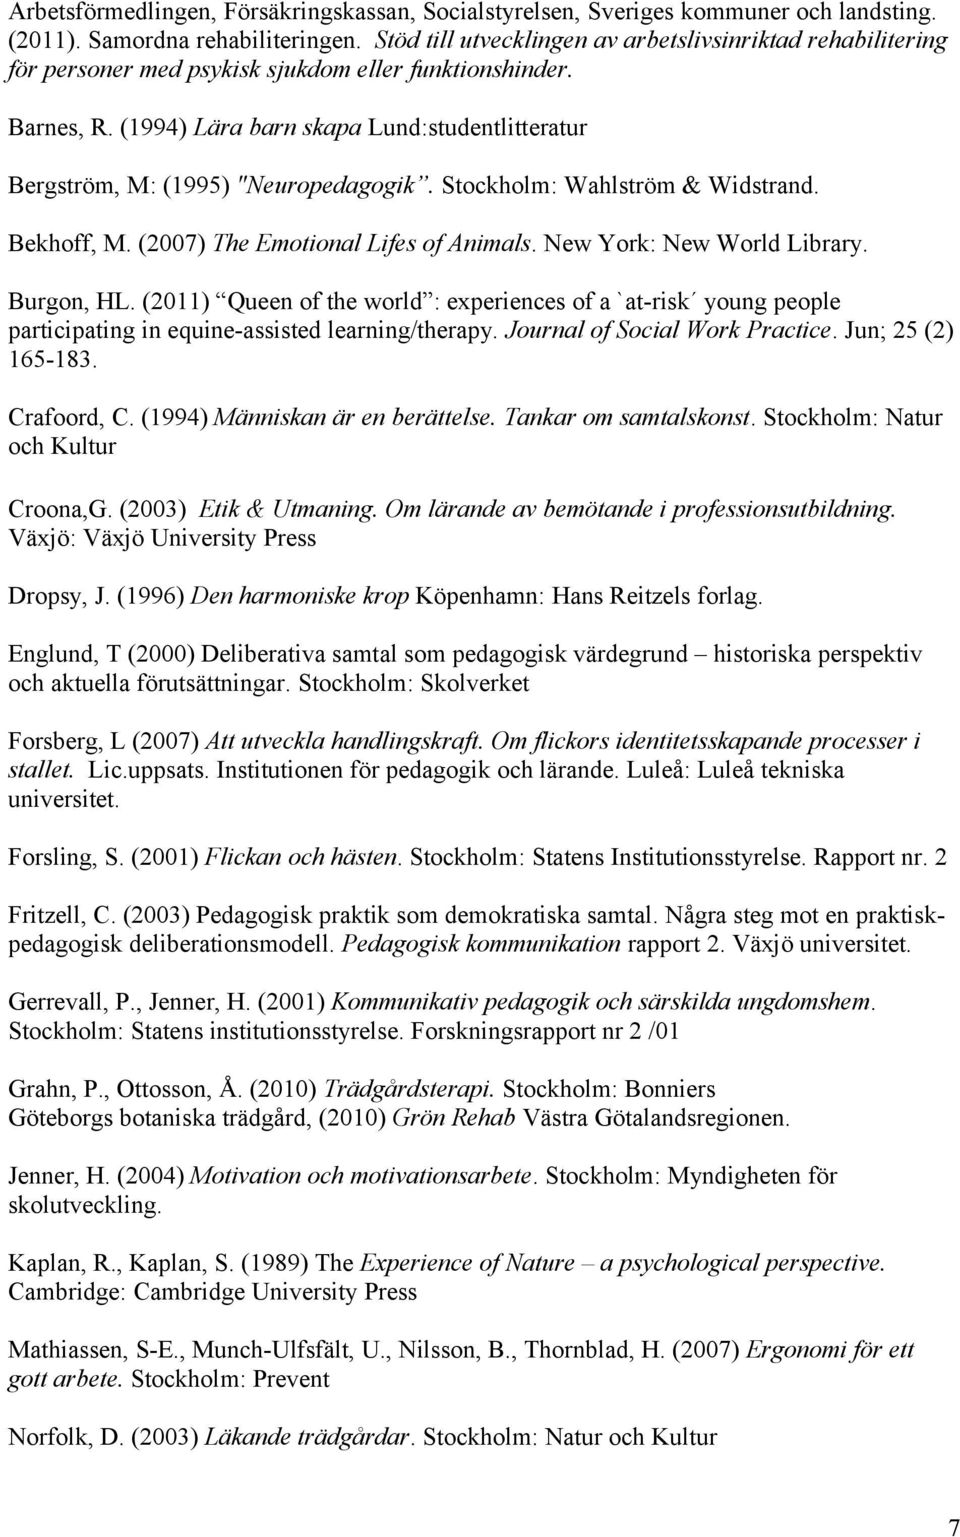 "(1994) Lära barn skapa Lund:studentlitteratur Bergström, M: (1995) ""Neuropedagogik. Stockholm: Wahlström & Widstrand. Bekhoff, M. (2007) The Emotional Lifes of Animals. New York: New World Library."